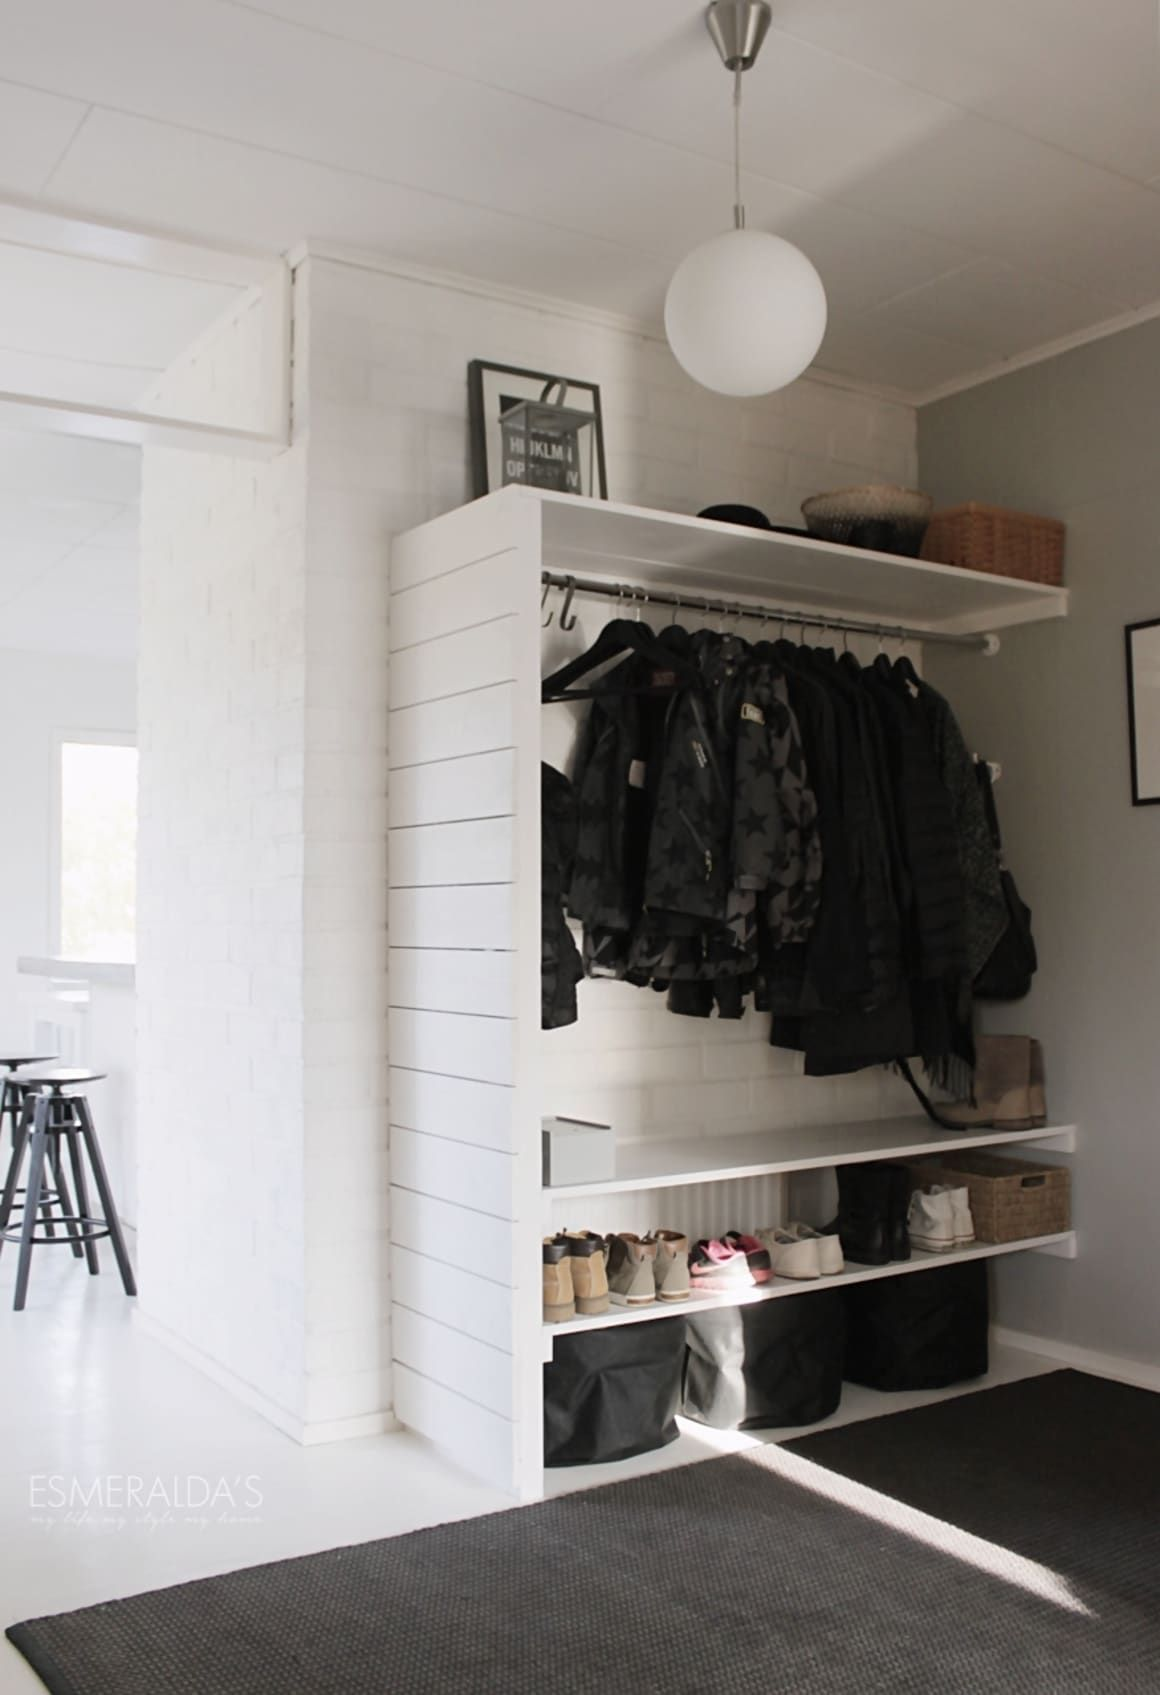 EntrywayGoals When Storage Is Tight and There's No Coat